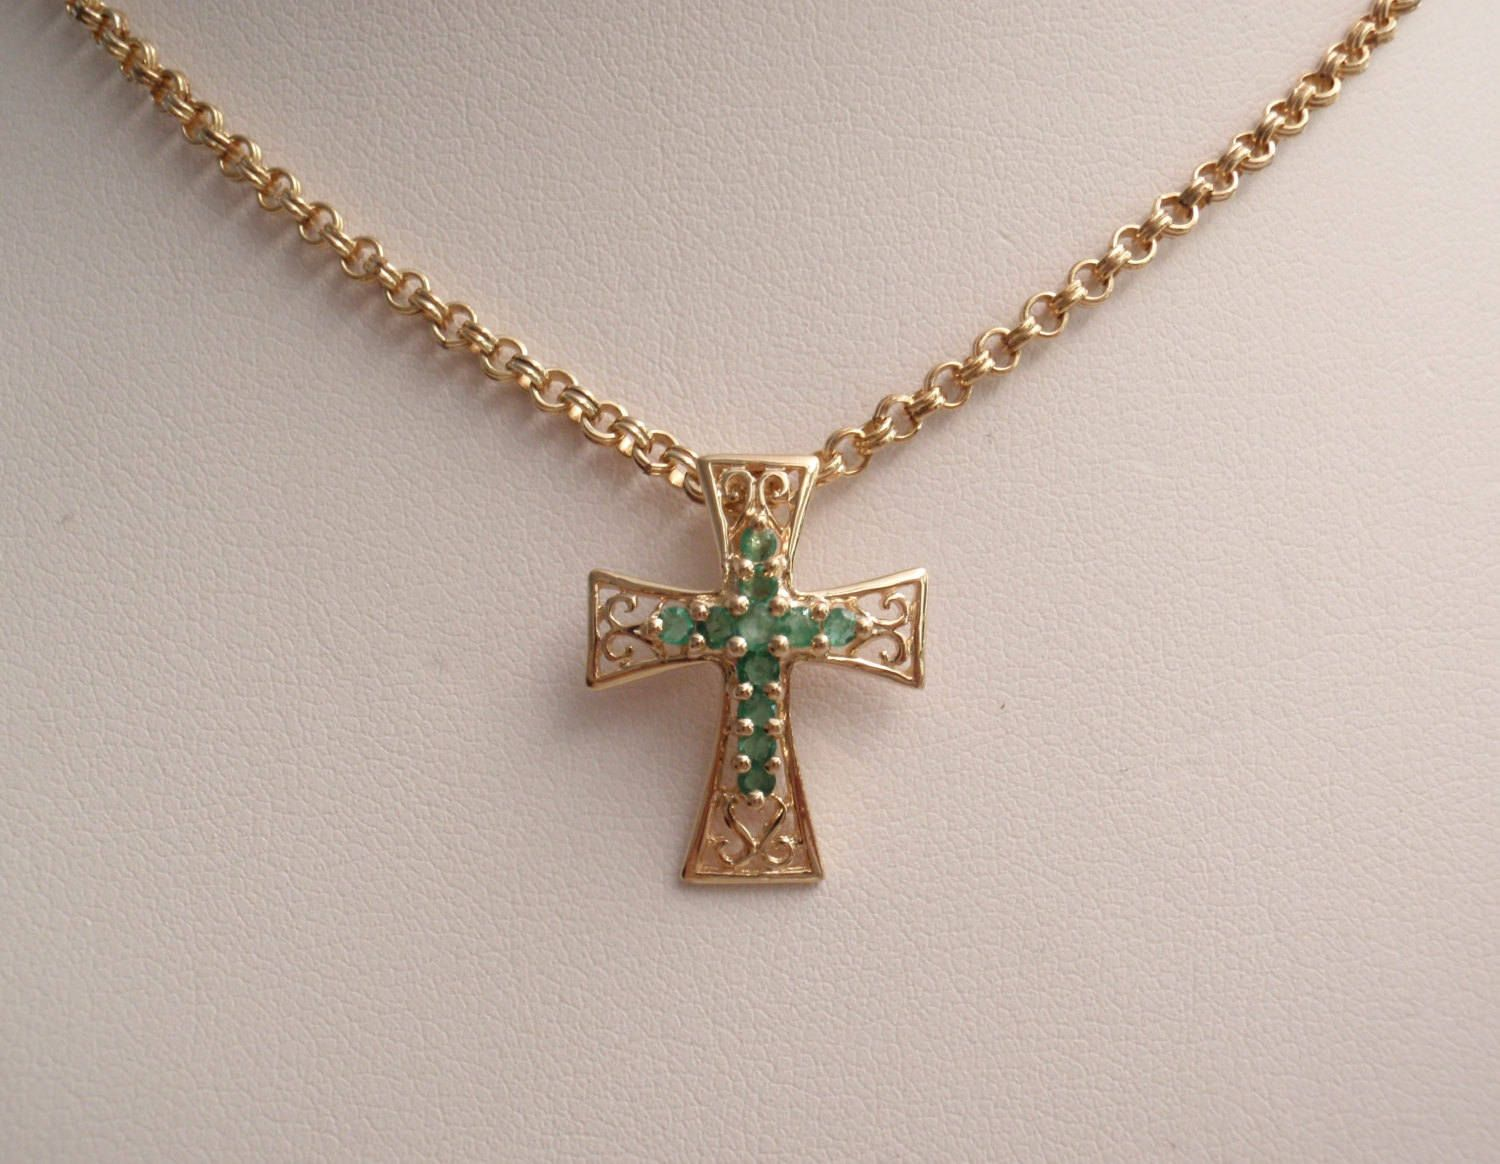 Emerald cross necklace k yellow gold inch chain vintage cw